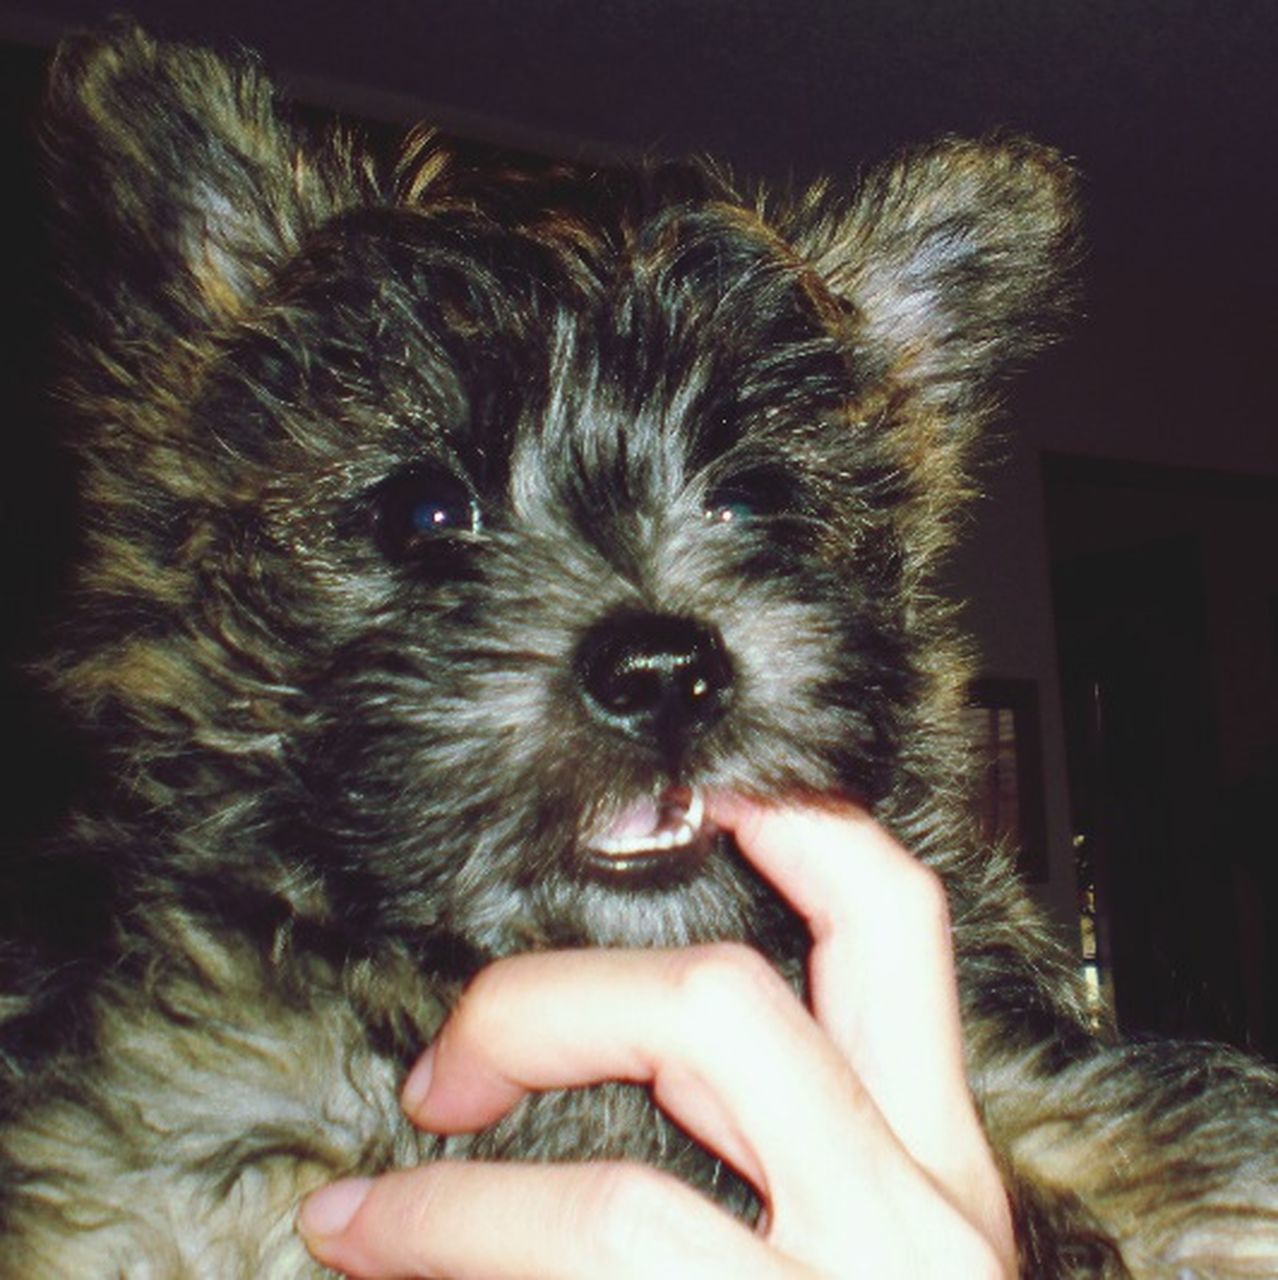 pets, animal themes, one animal, person, domestic animals, indoors, dog, holding, part of, mammal, lifestyles, unrecognizable person, cropped, human finger, domestic cat, close-up